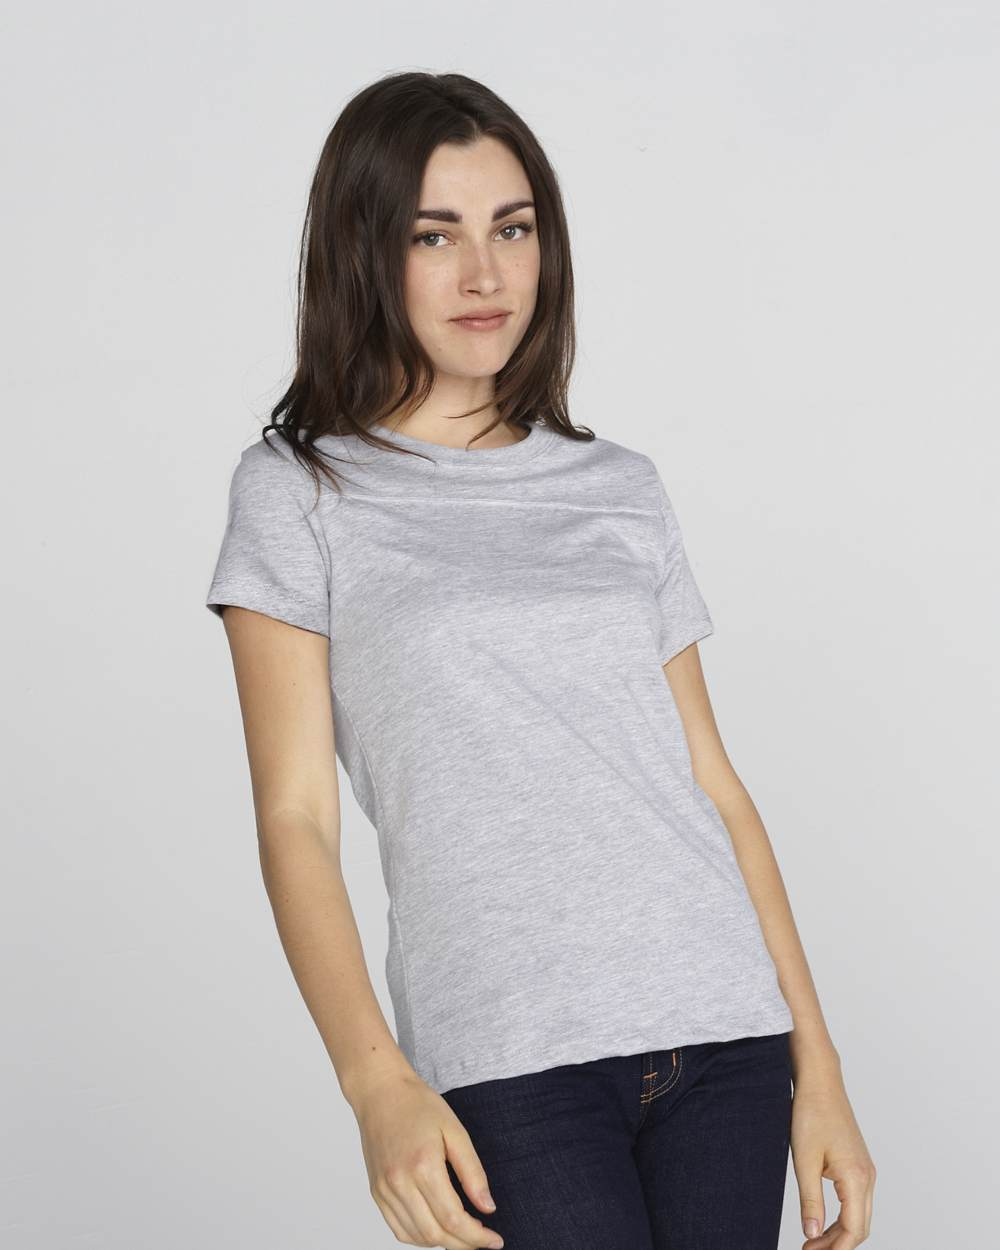 Bella 6010 Ladies short sleeve yoke tee